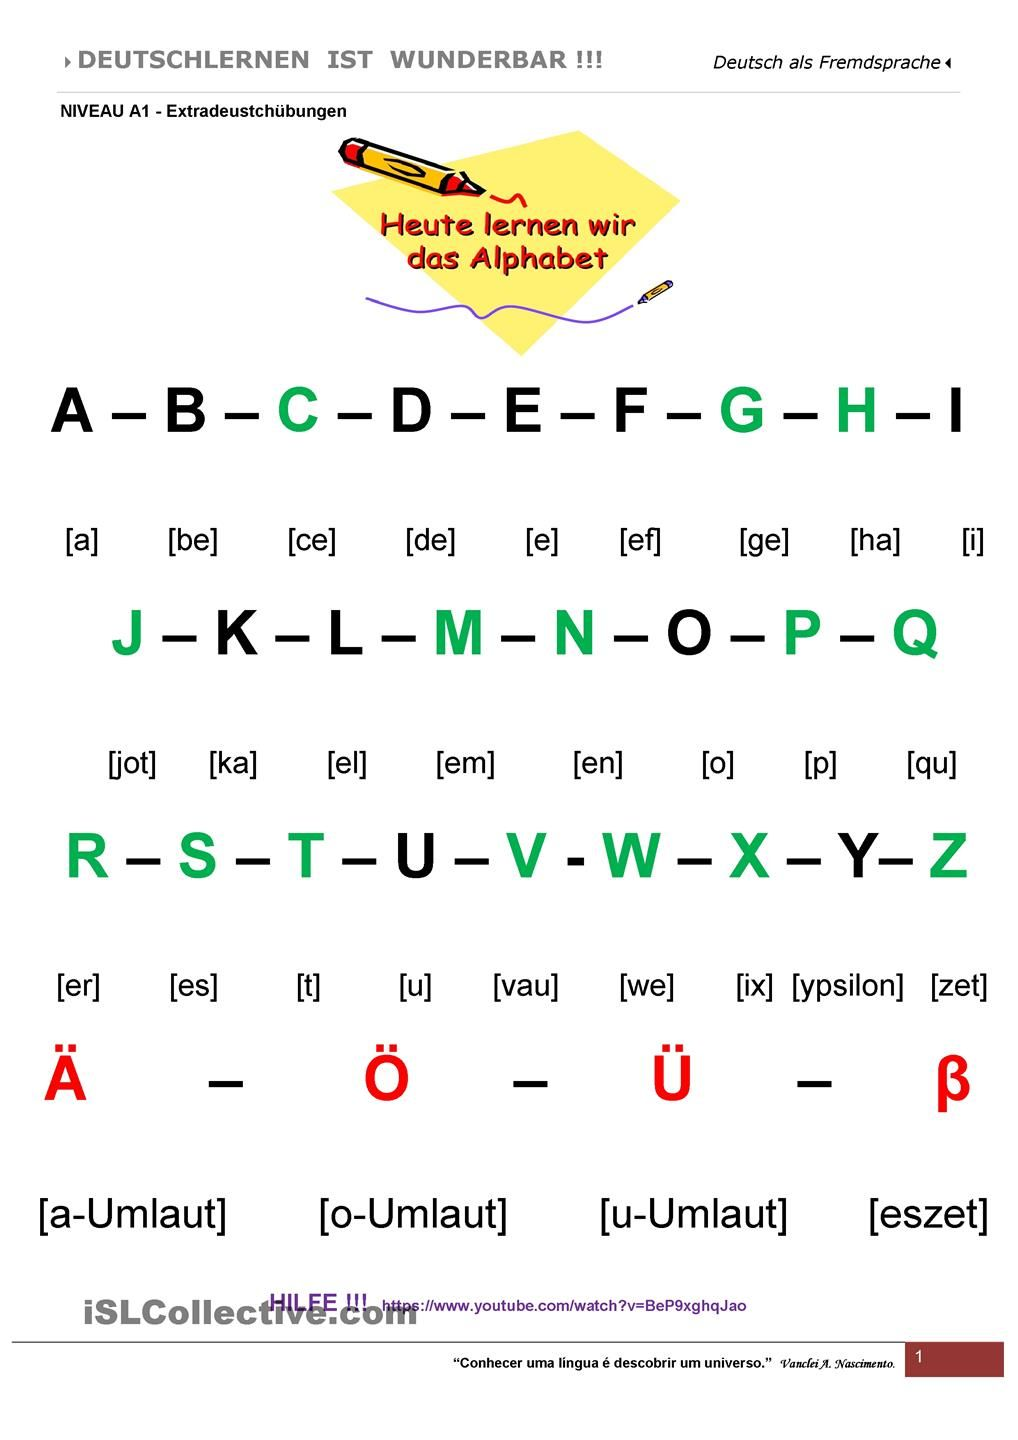 A1 - Das Alphabet | German resources, Learn german and Language